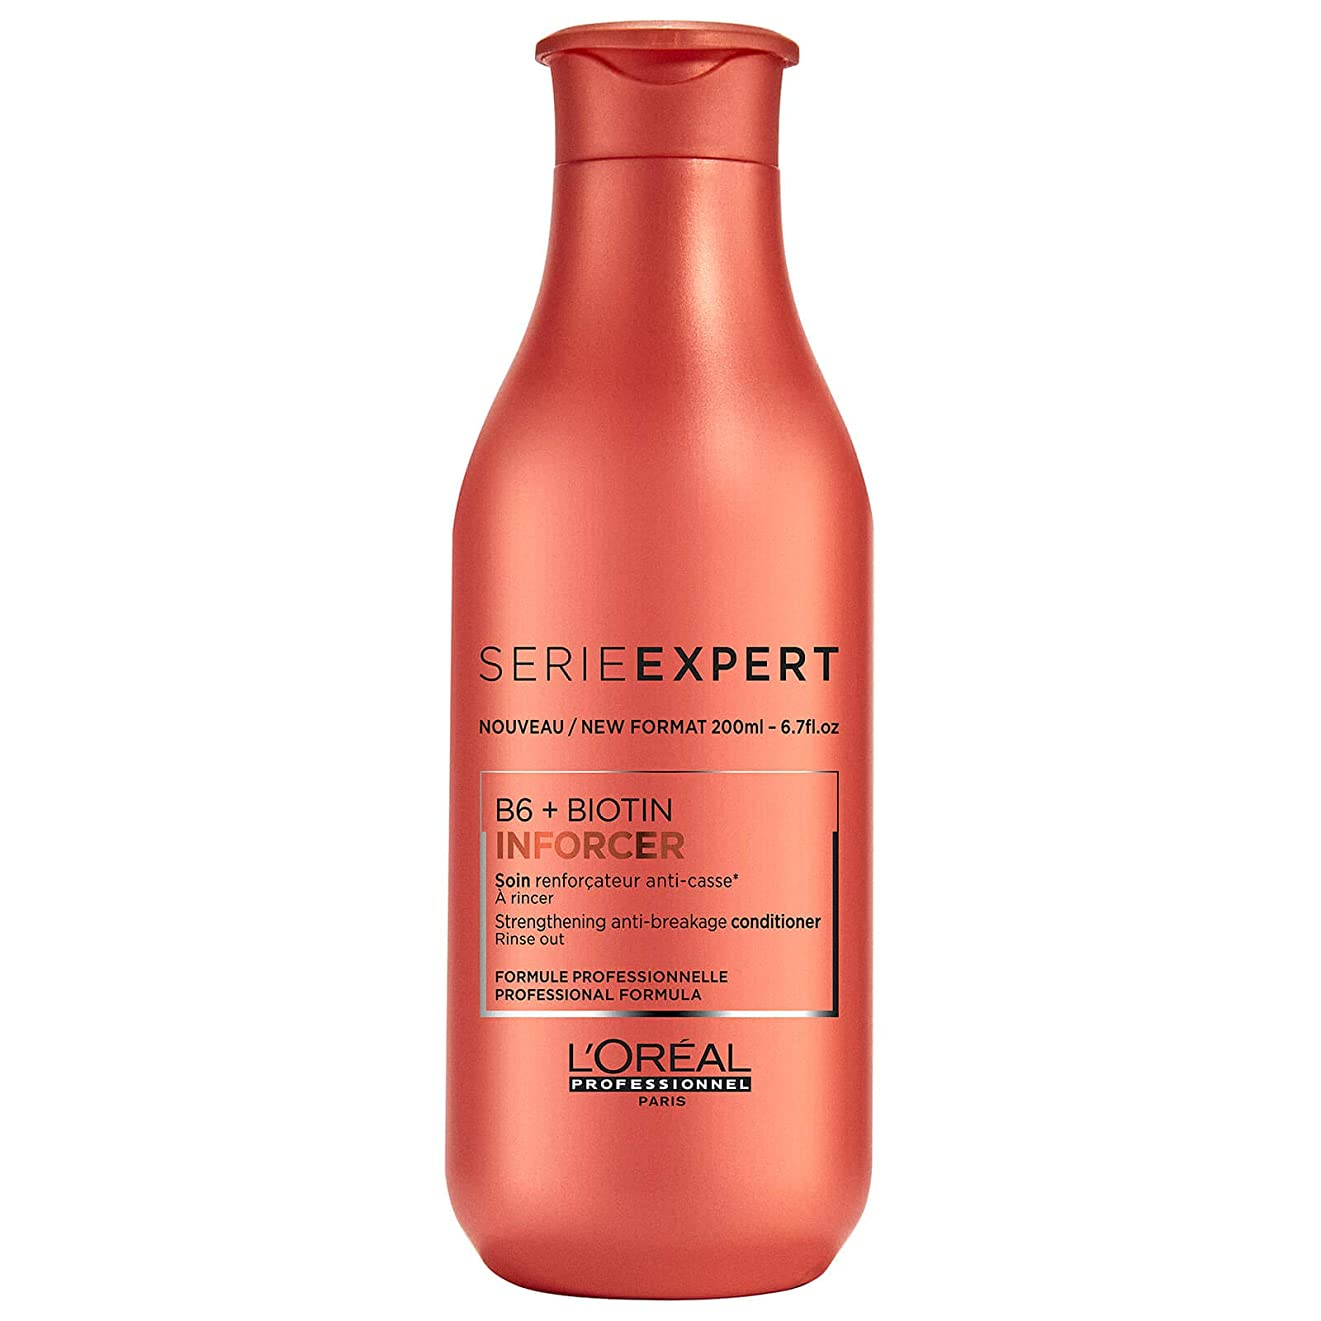 移植満員キルスロレアル Professionnel Serie Expert - Inforcer B6 + Biotin Strengthening Anti-Breakage Conditioner 200ml/6.7oz並行輸入品